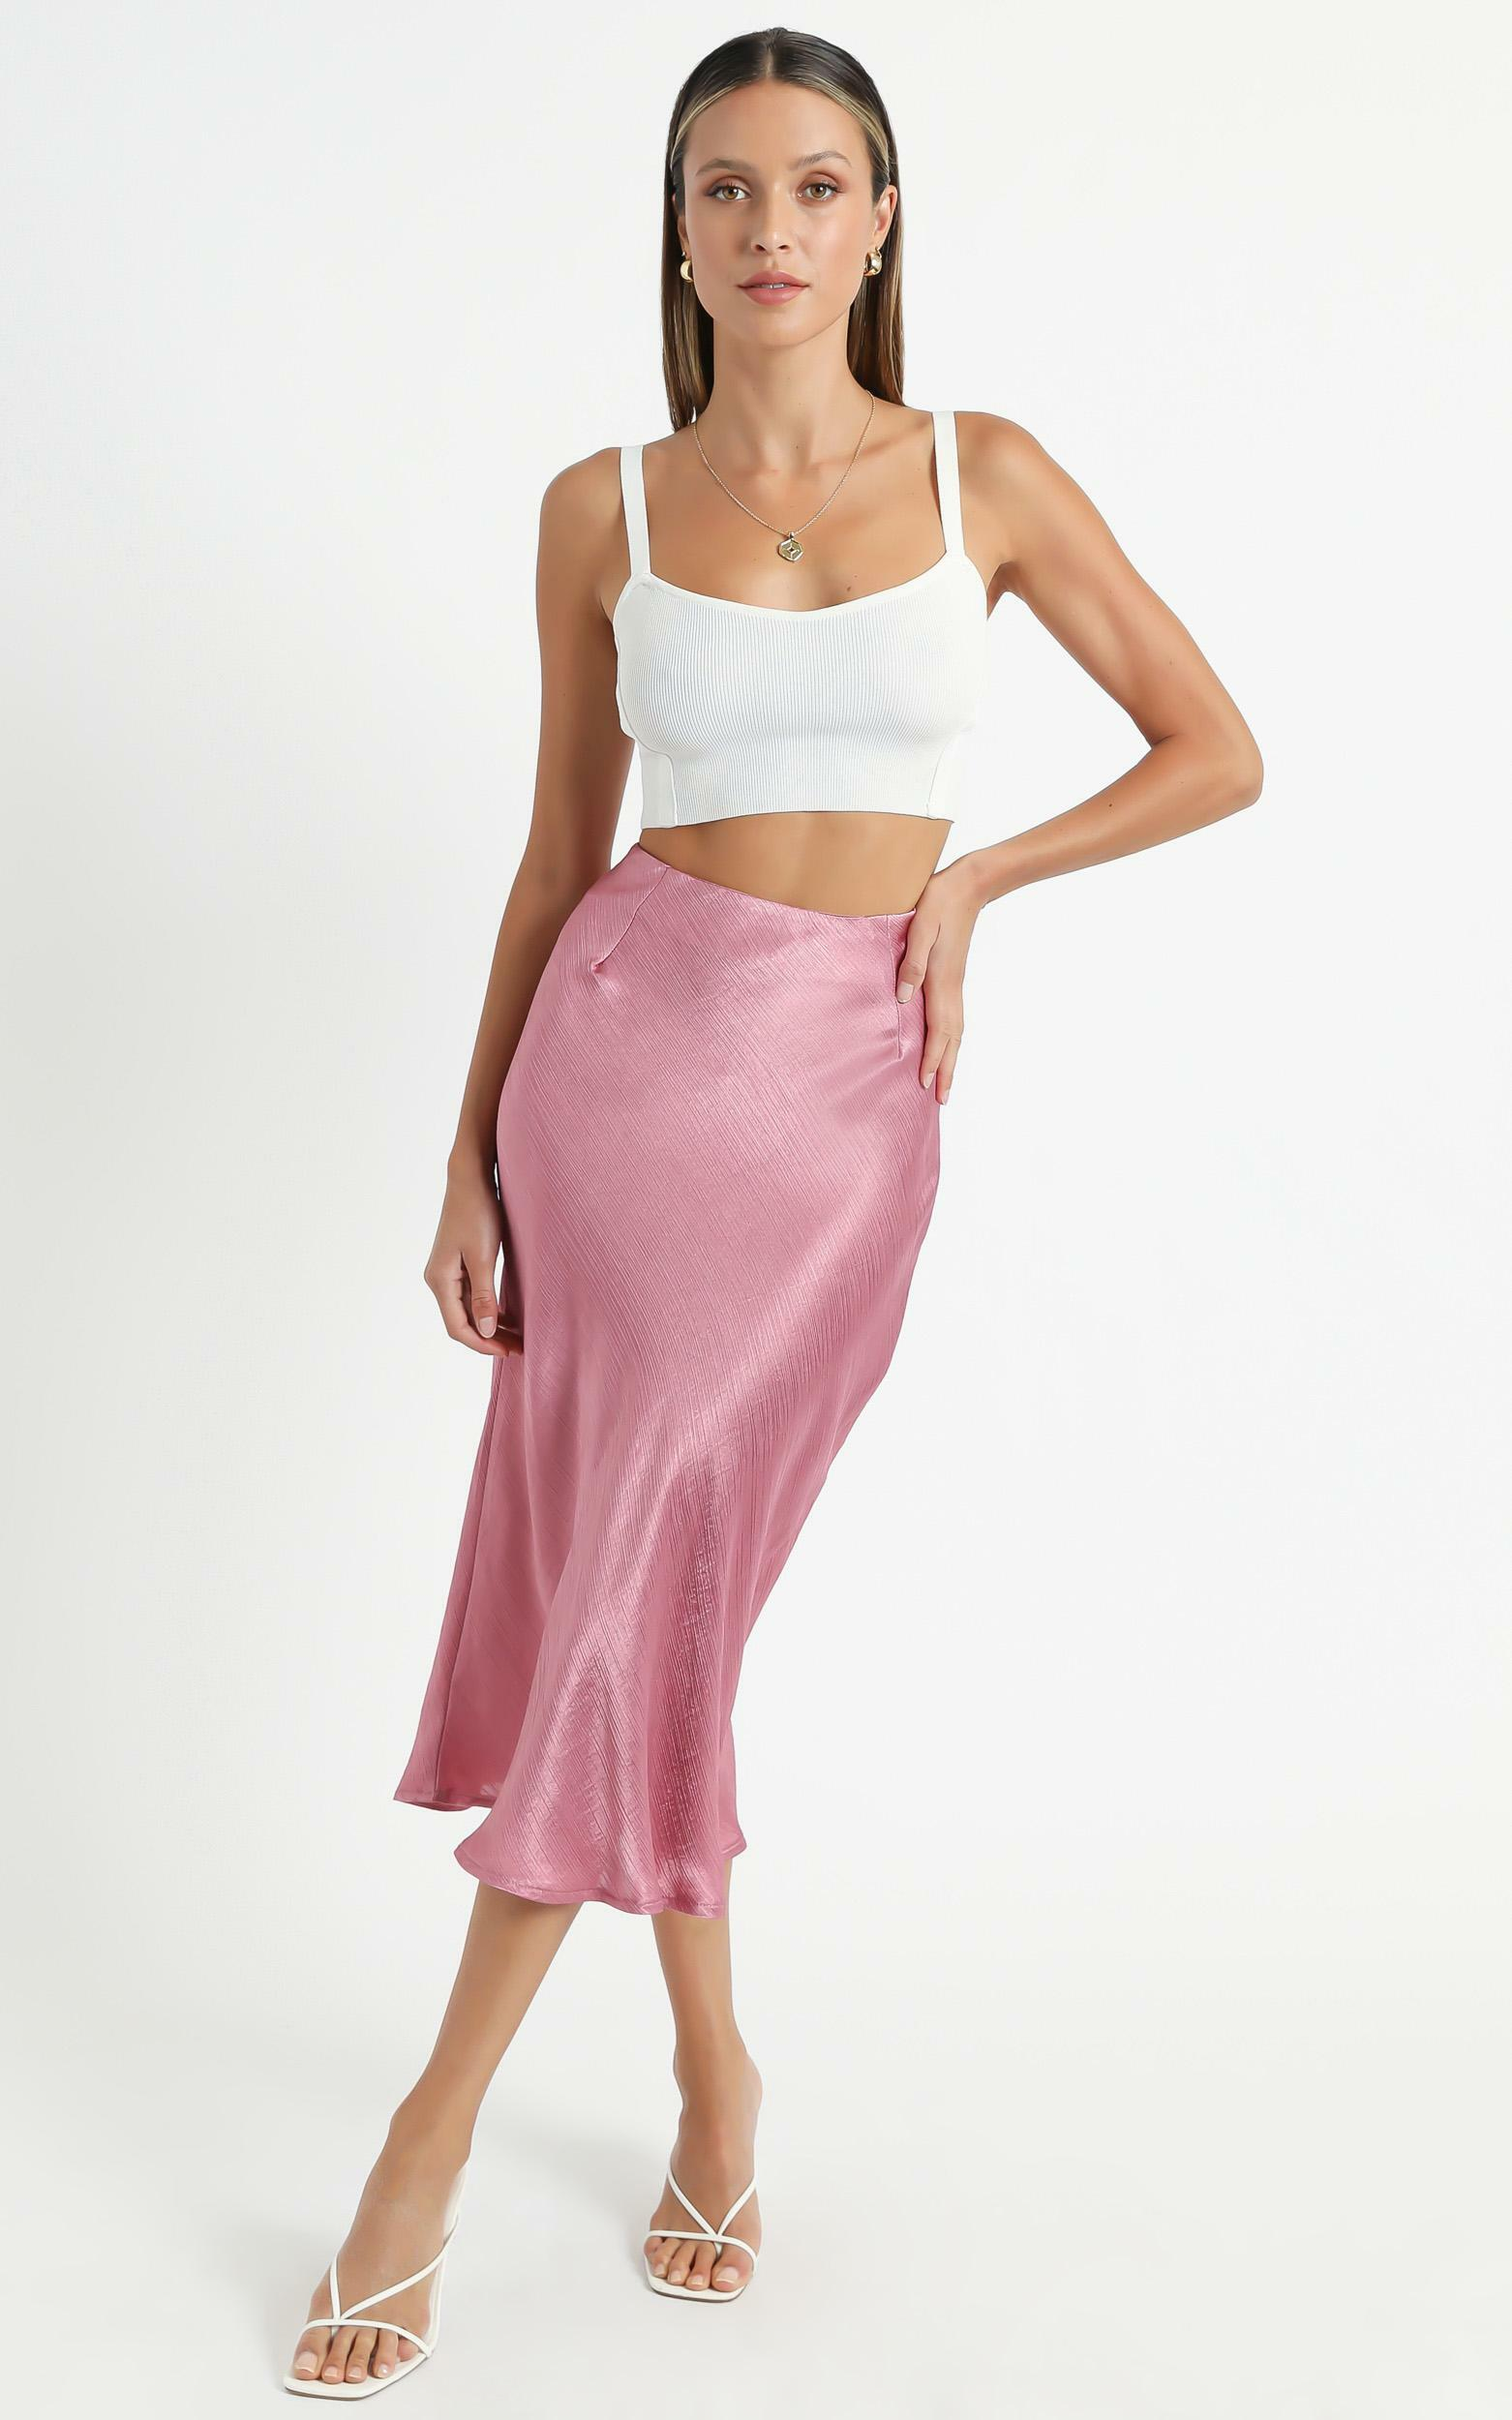 Creating Art Skirt in Dusty Rose Satin - 06, PNK2, hi-res image number null